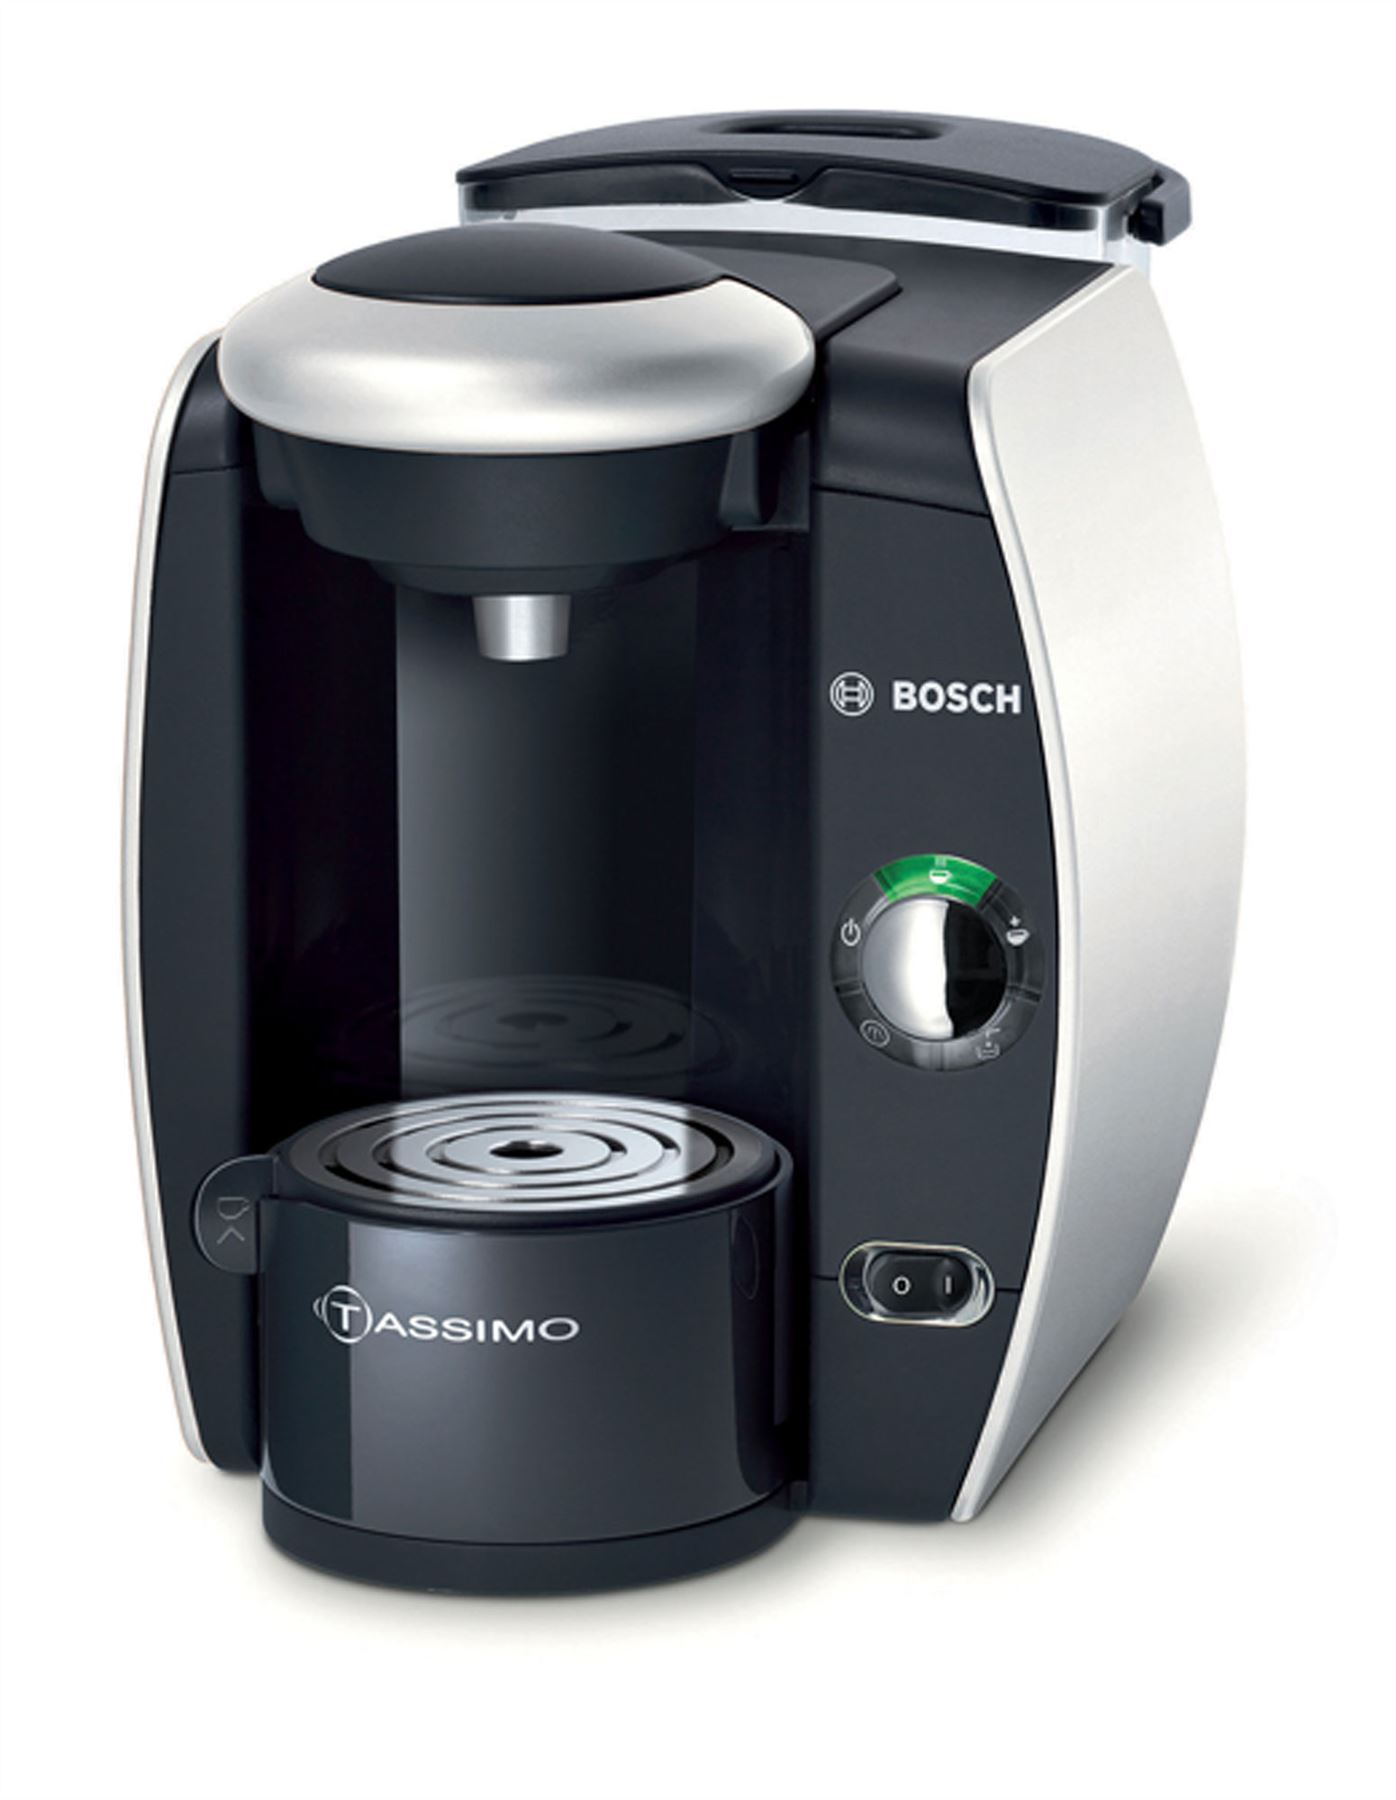 Bosch Coffee Maker Cleaning Disc : Bosch Tassimo T40 Multi Beverage Machine Espresso & Coffee Maker TAS4011GB eBay